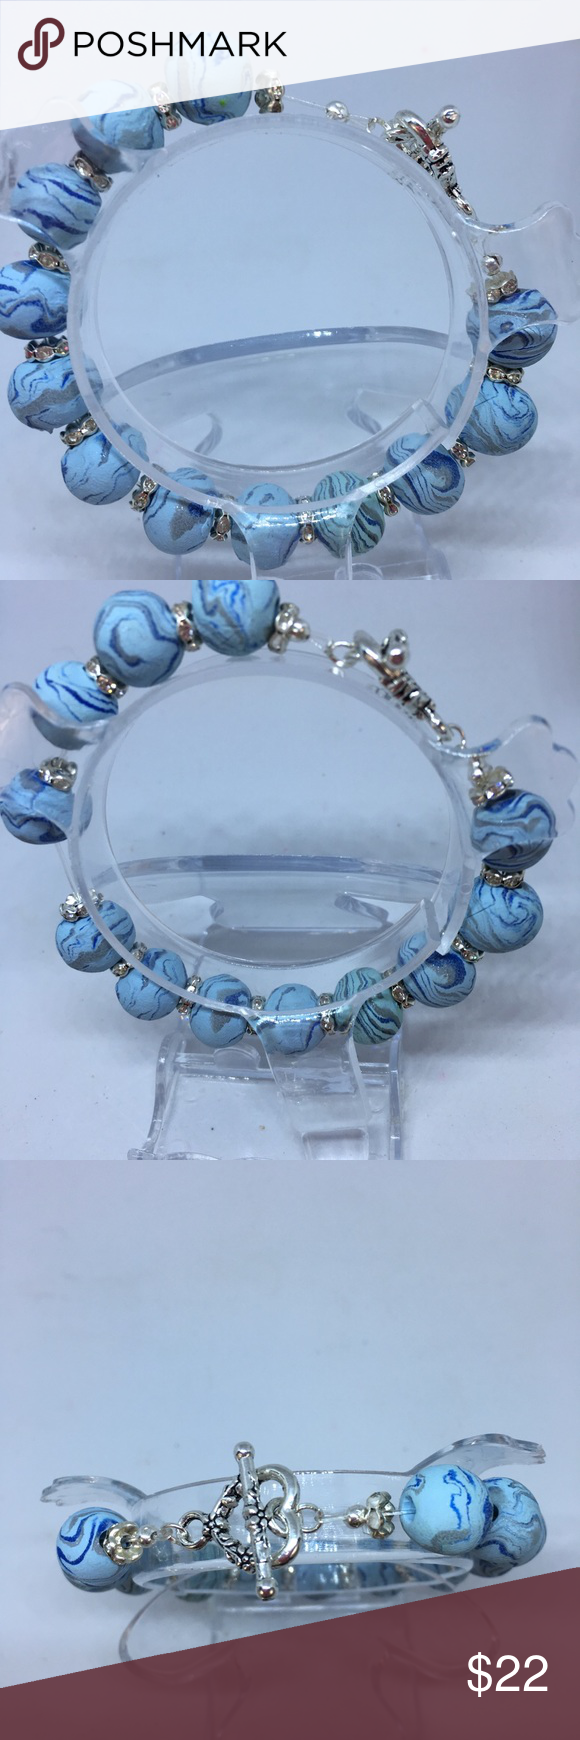 "Handmade Polymer Clay Beaded Bracelet ""Host Pick"""